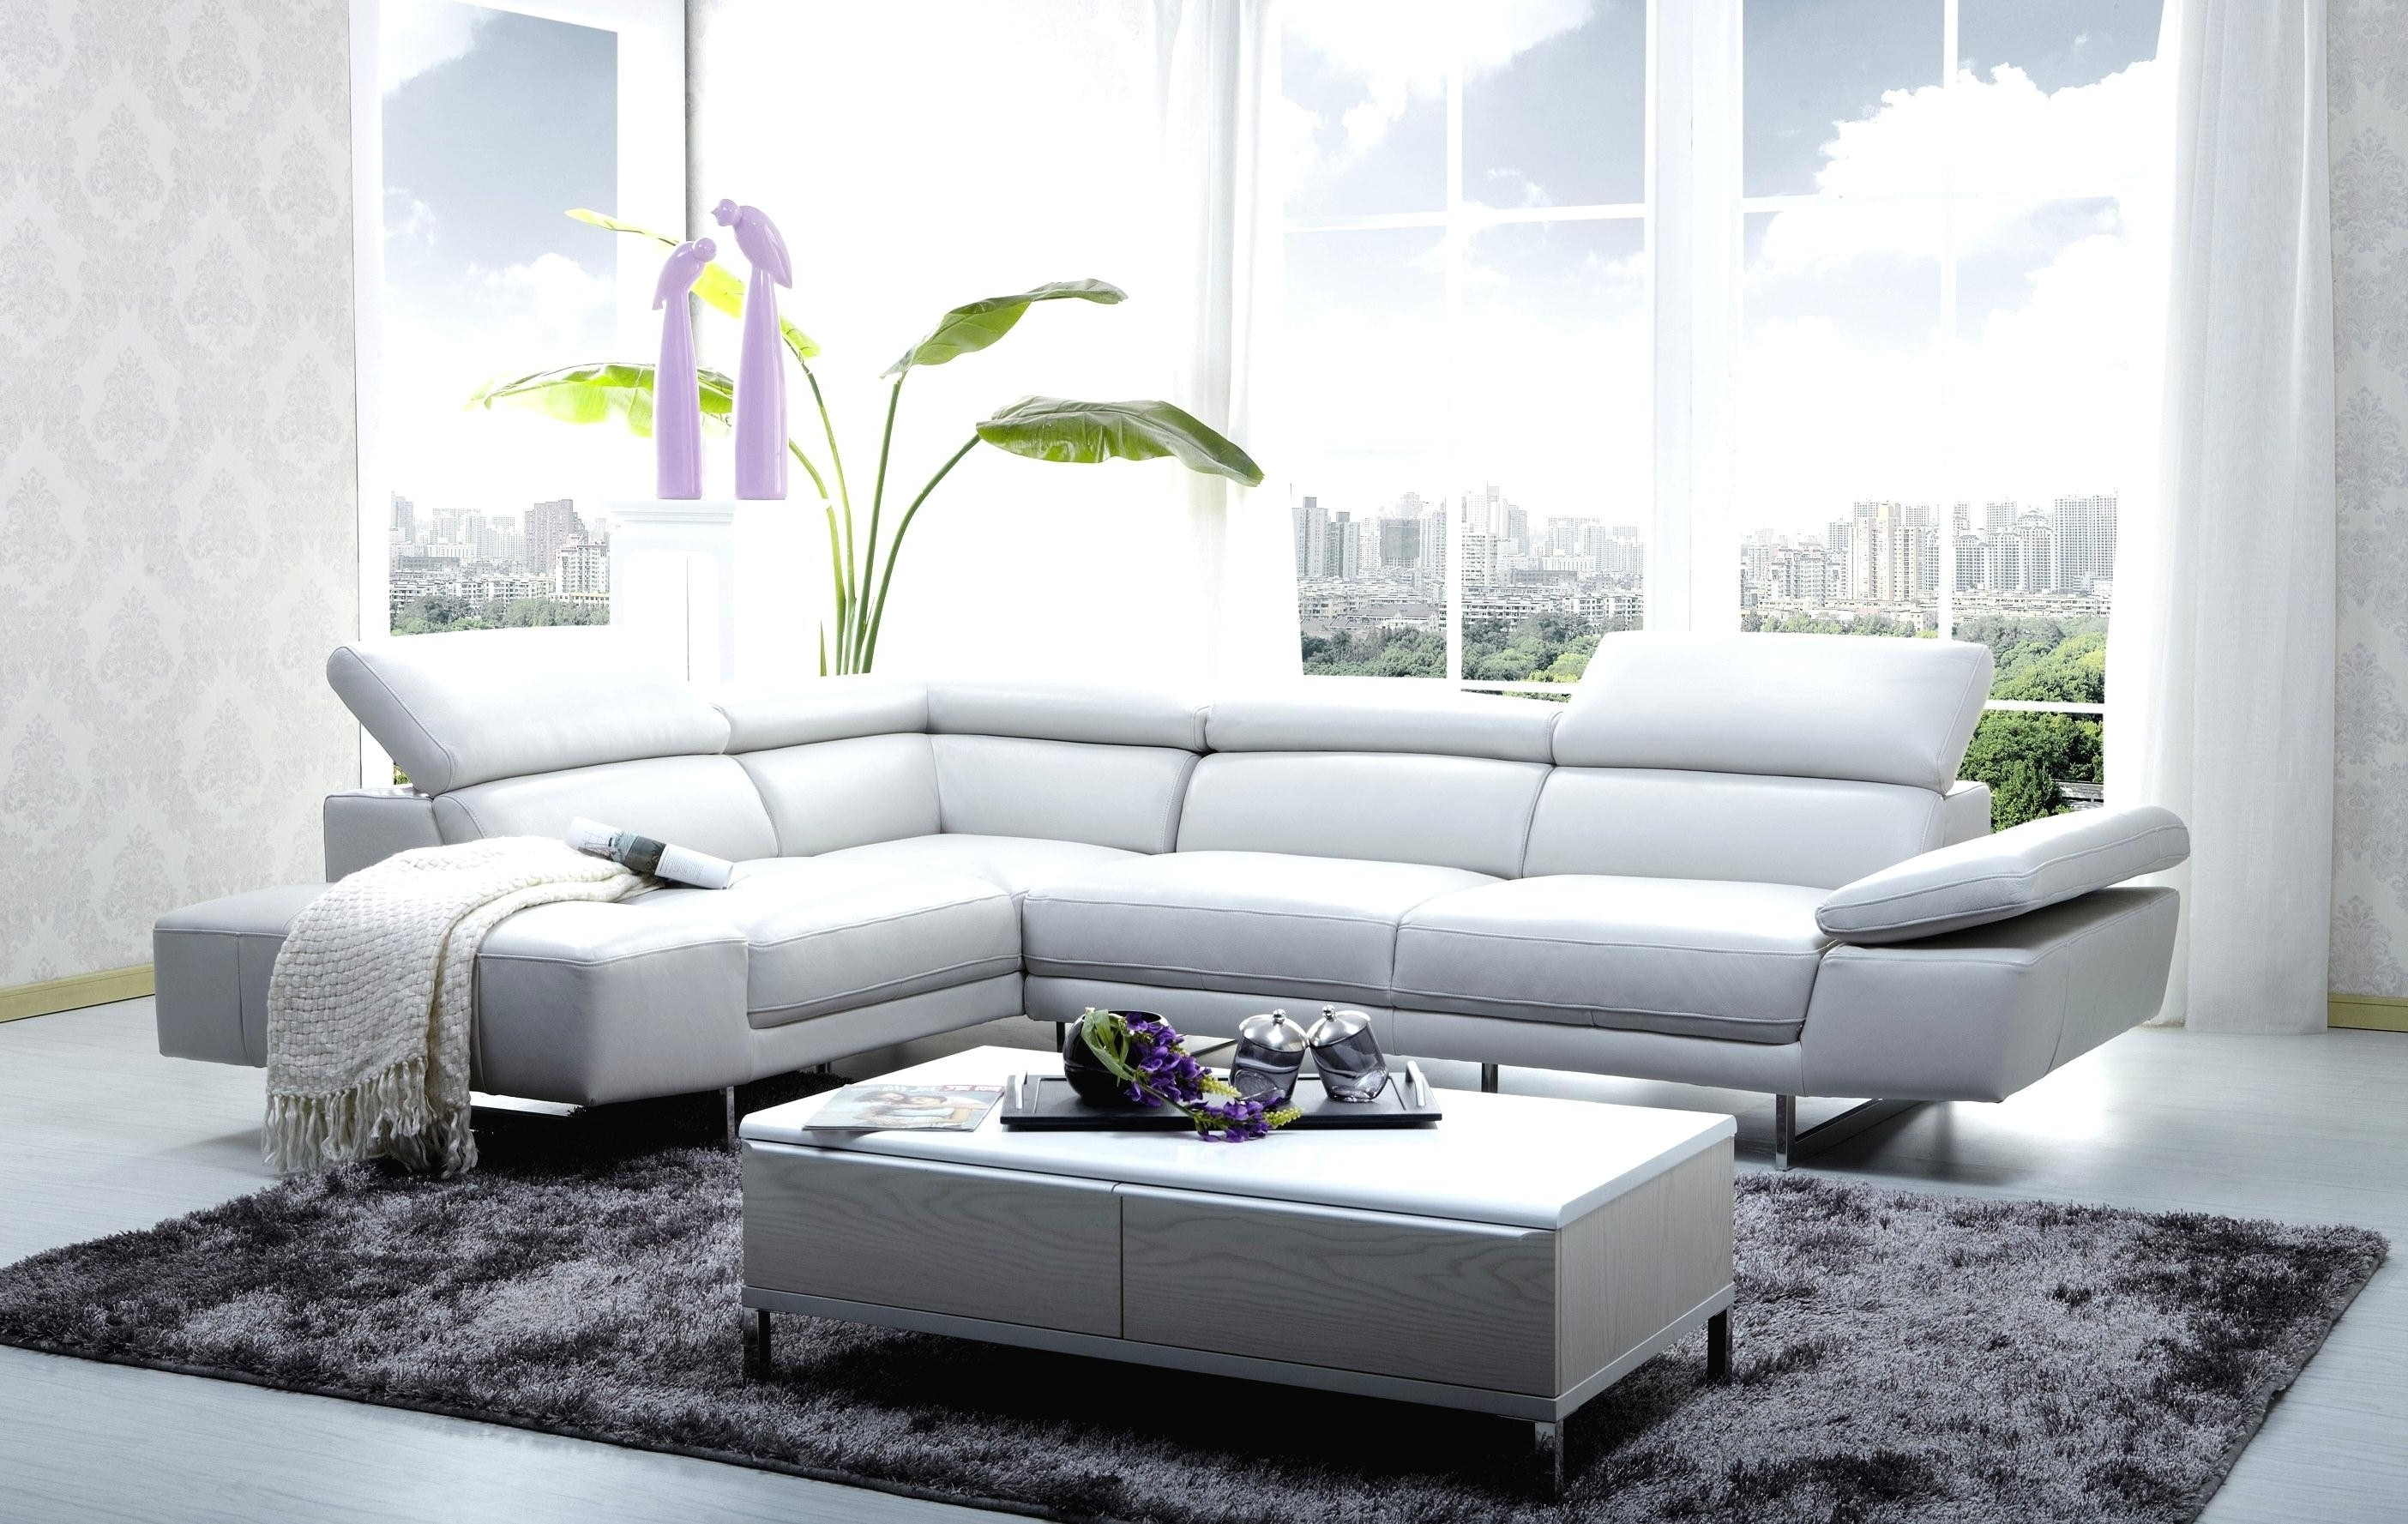 Most Recent High Quality Leather Sectional Sofas – Fjellkjeden Pertaining To Quality Sectional Sofas (View 10 of 20)